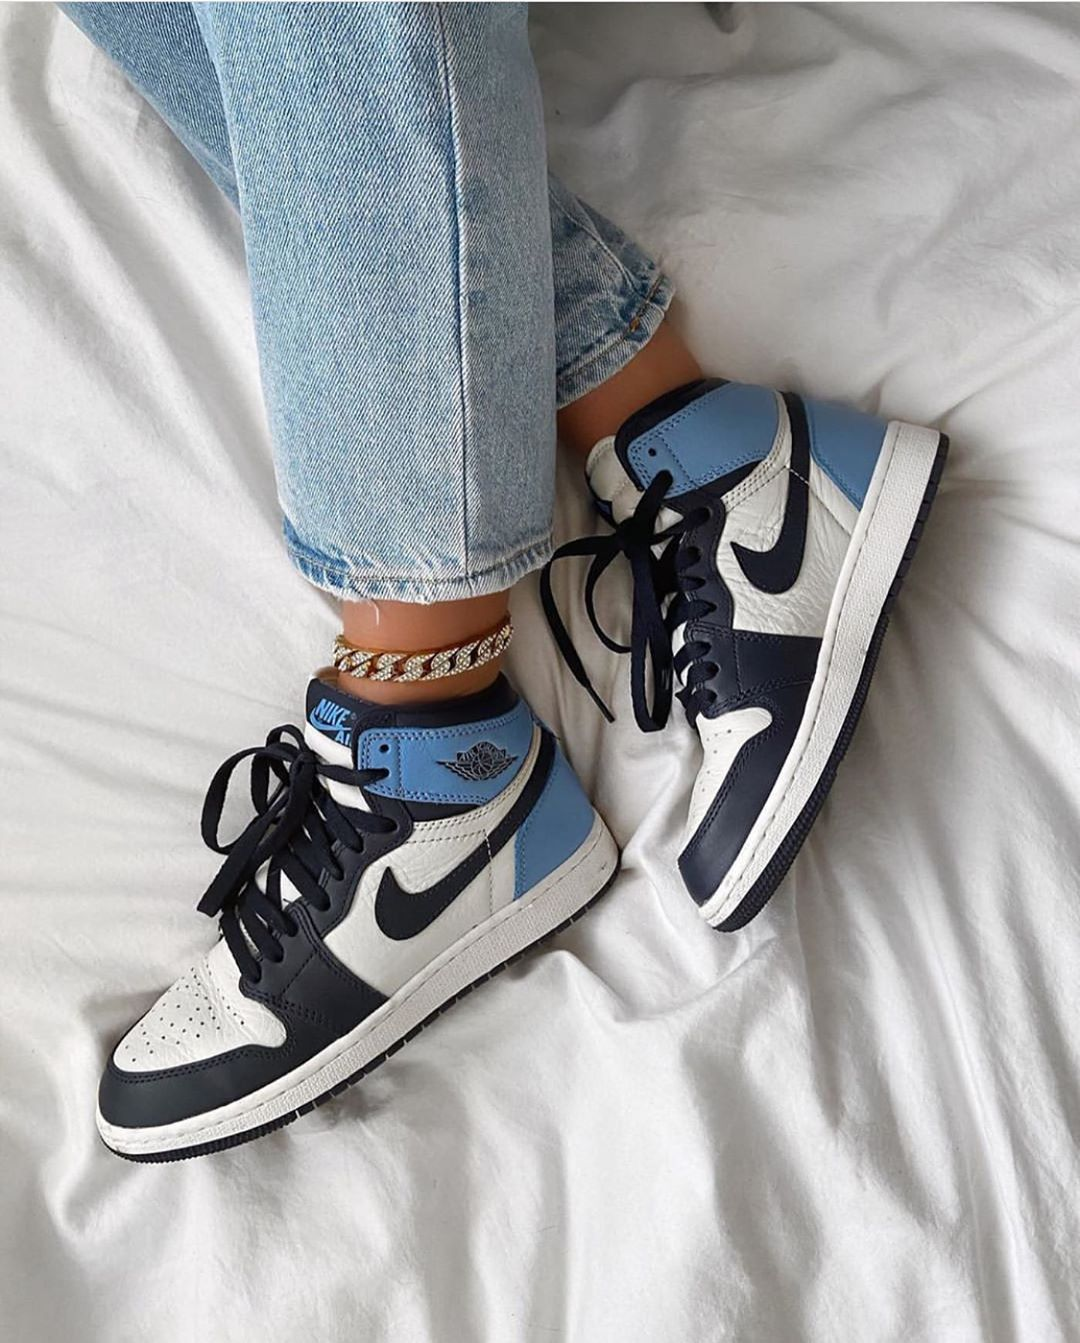 Jordan 1 Retro High Obsidian UNC in 2020 | Hype shoes, Nike ...